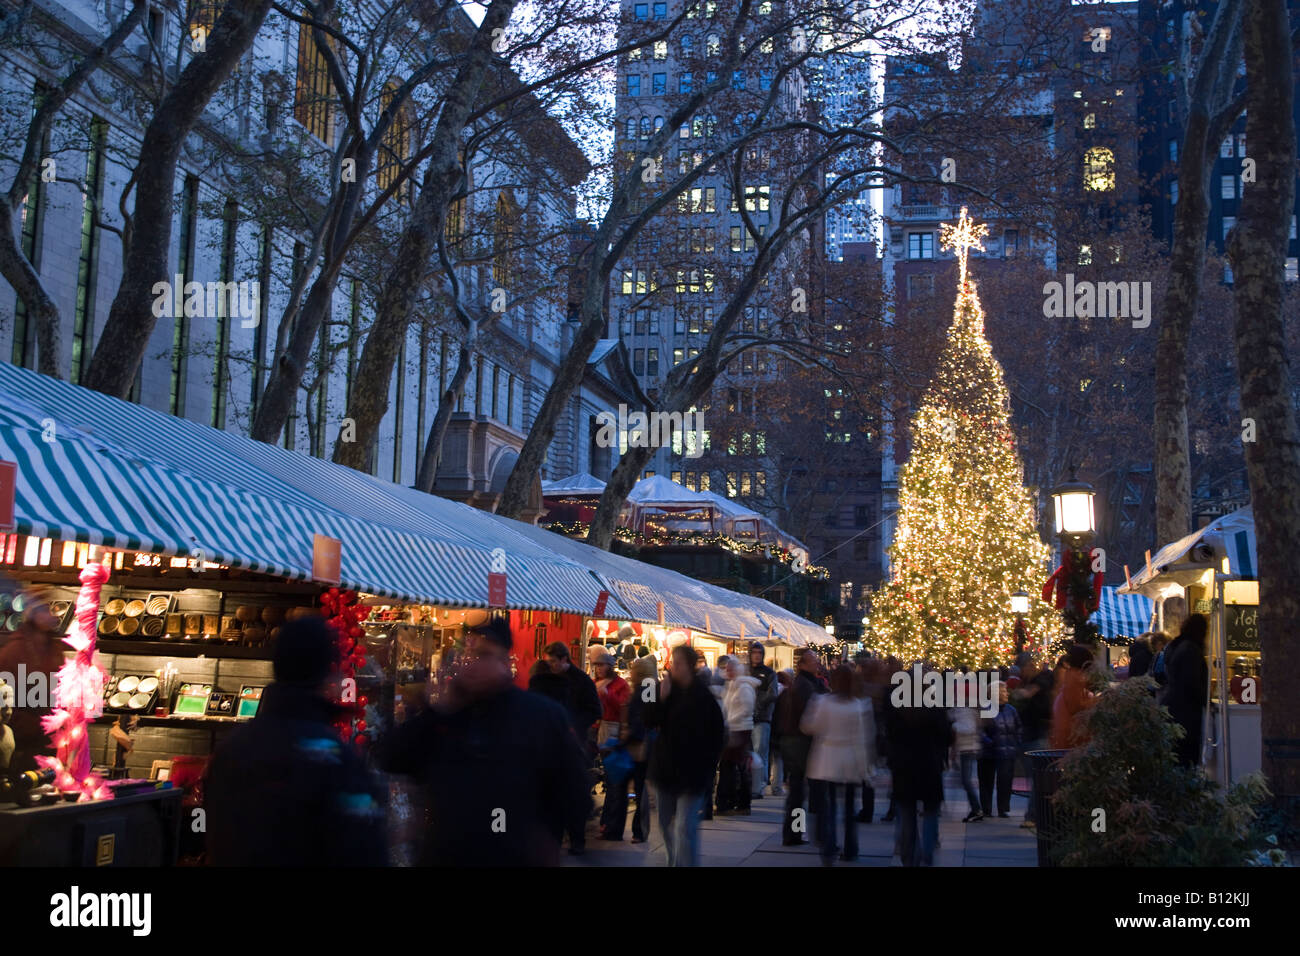 Christmas Market New York City.Bryant Park Christmas Market Stock Photos Bryant Park